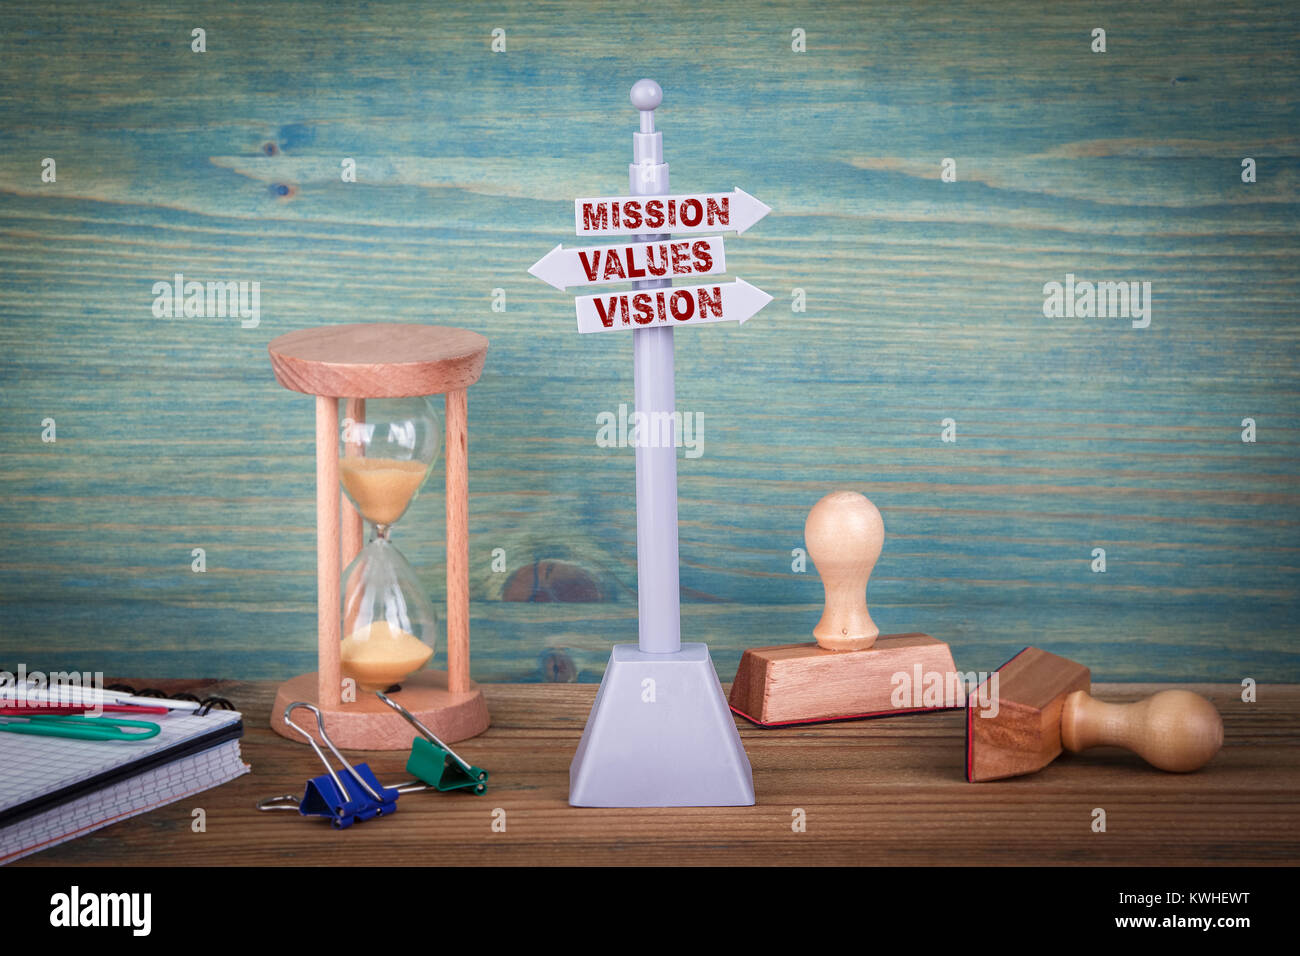 mission values vision. Signpost on wooden table. - Stock Image